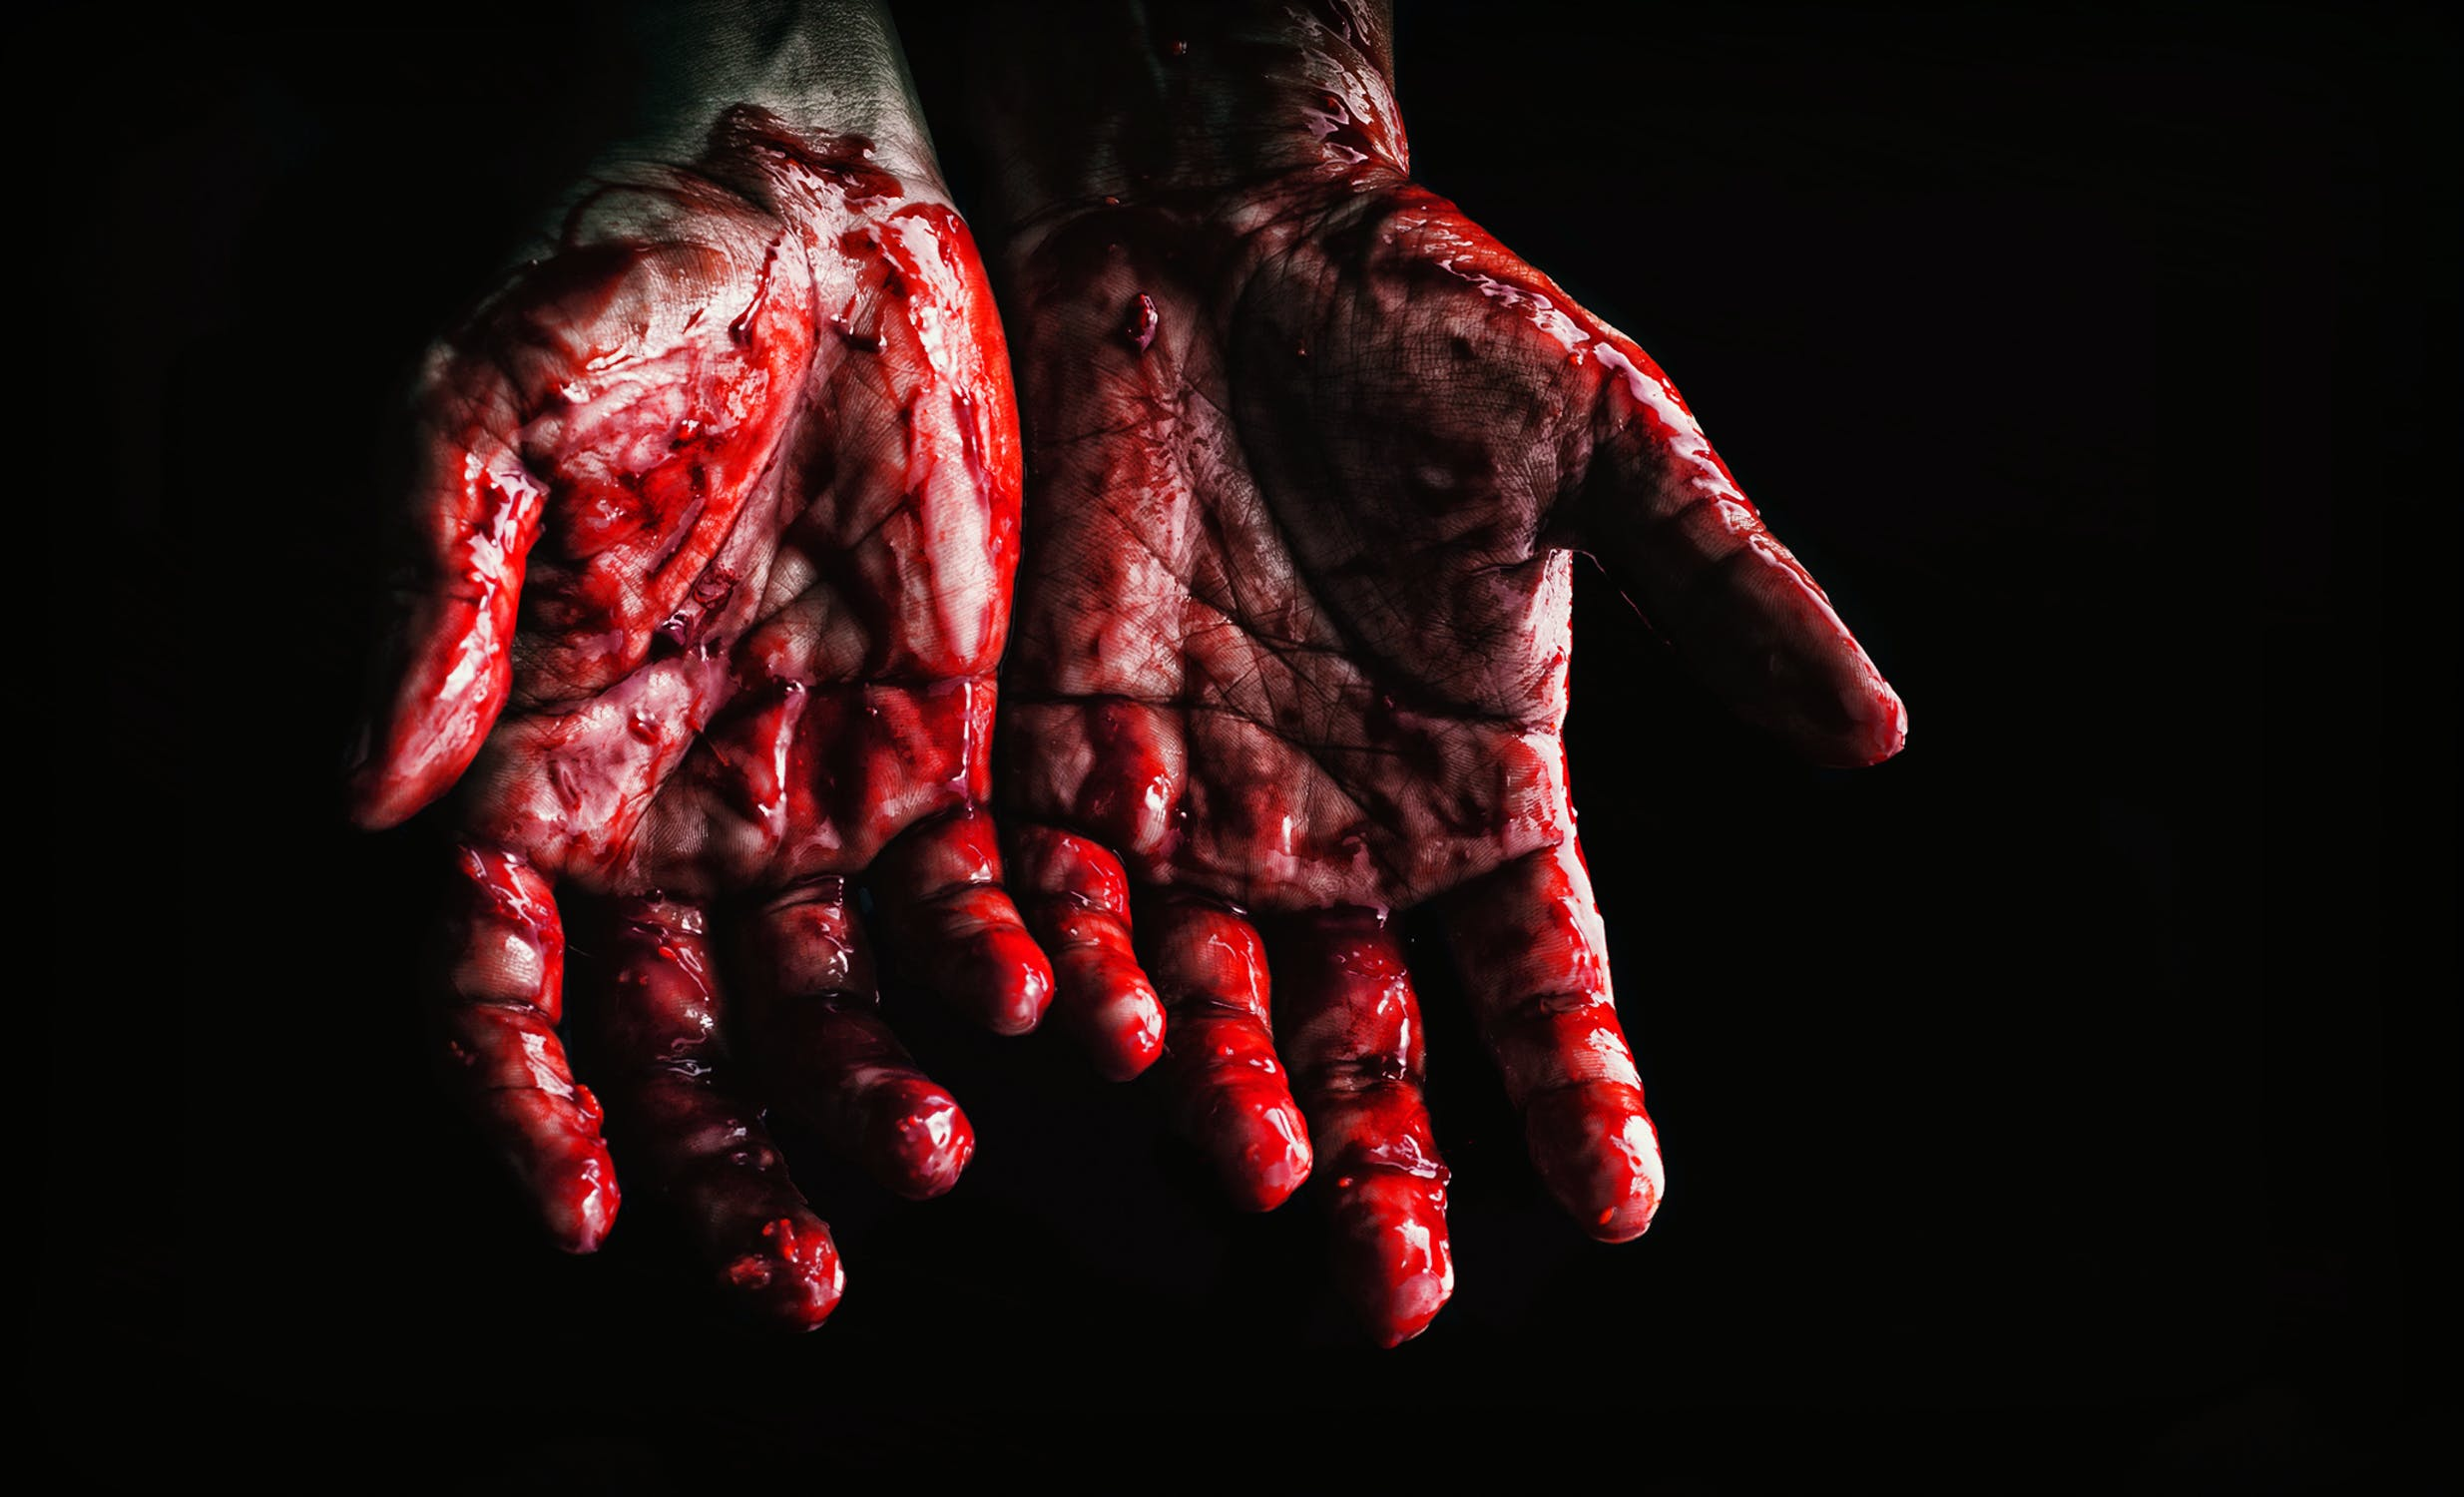 LGBT Lawyers a pair of bloody hands after a violent crime